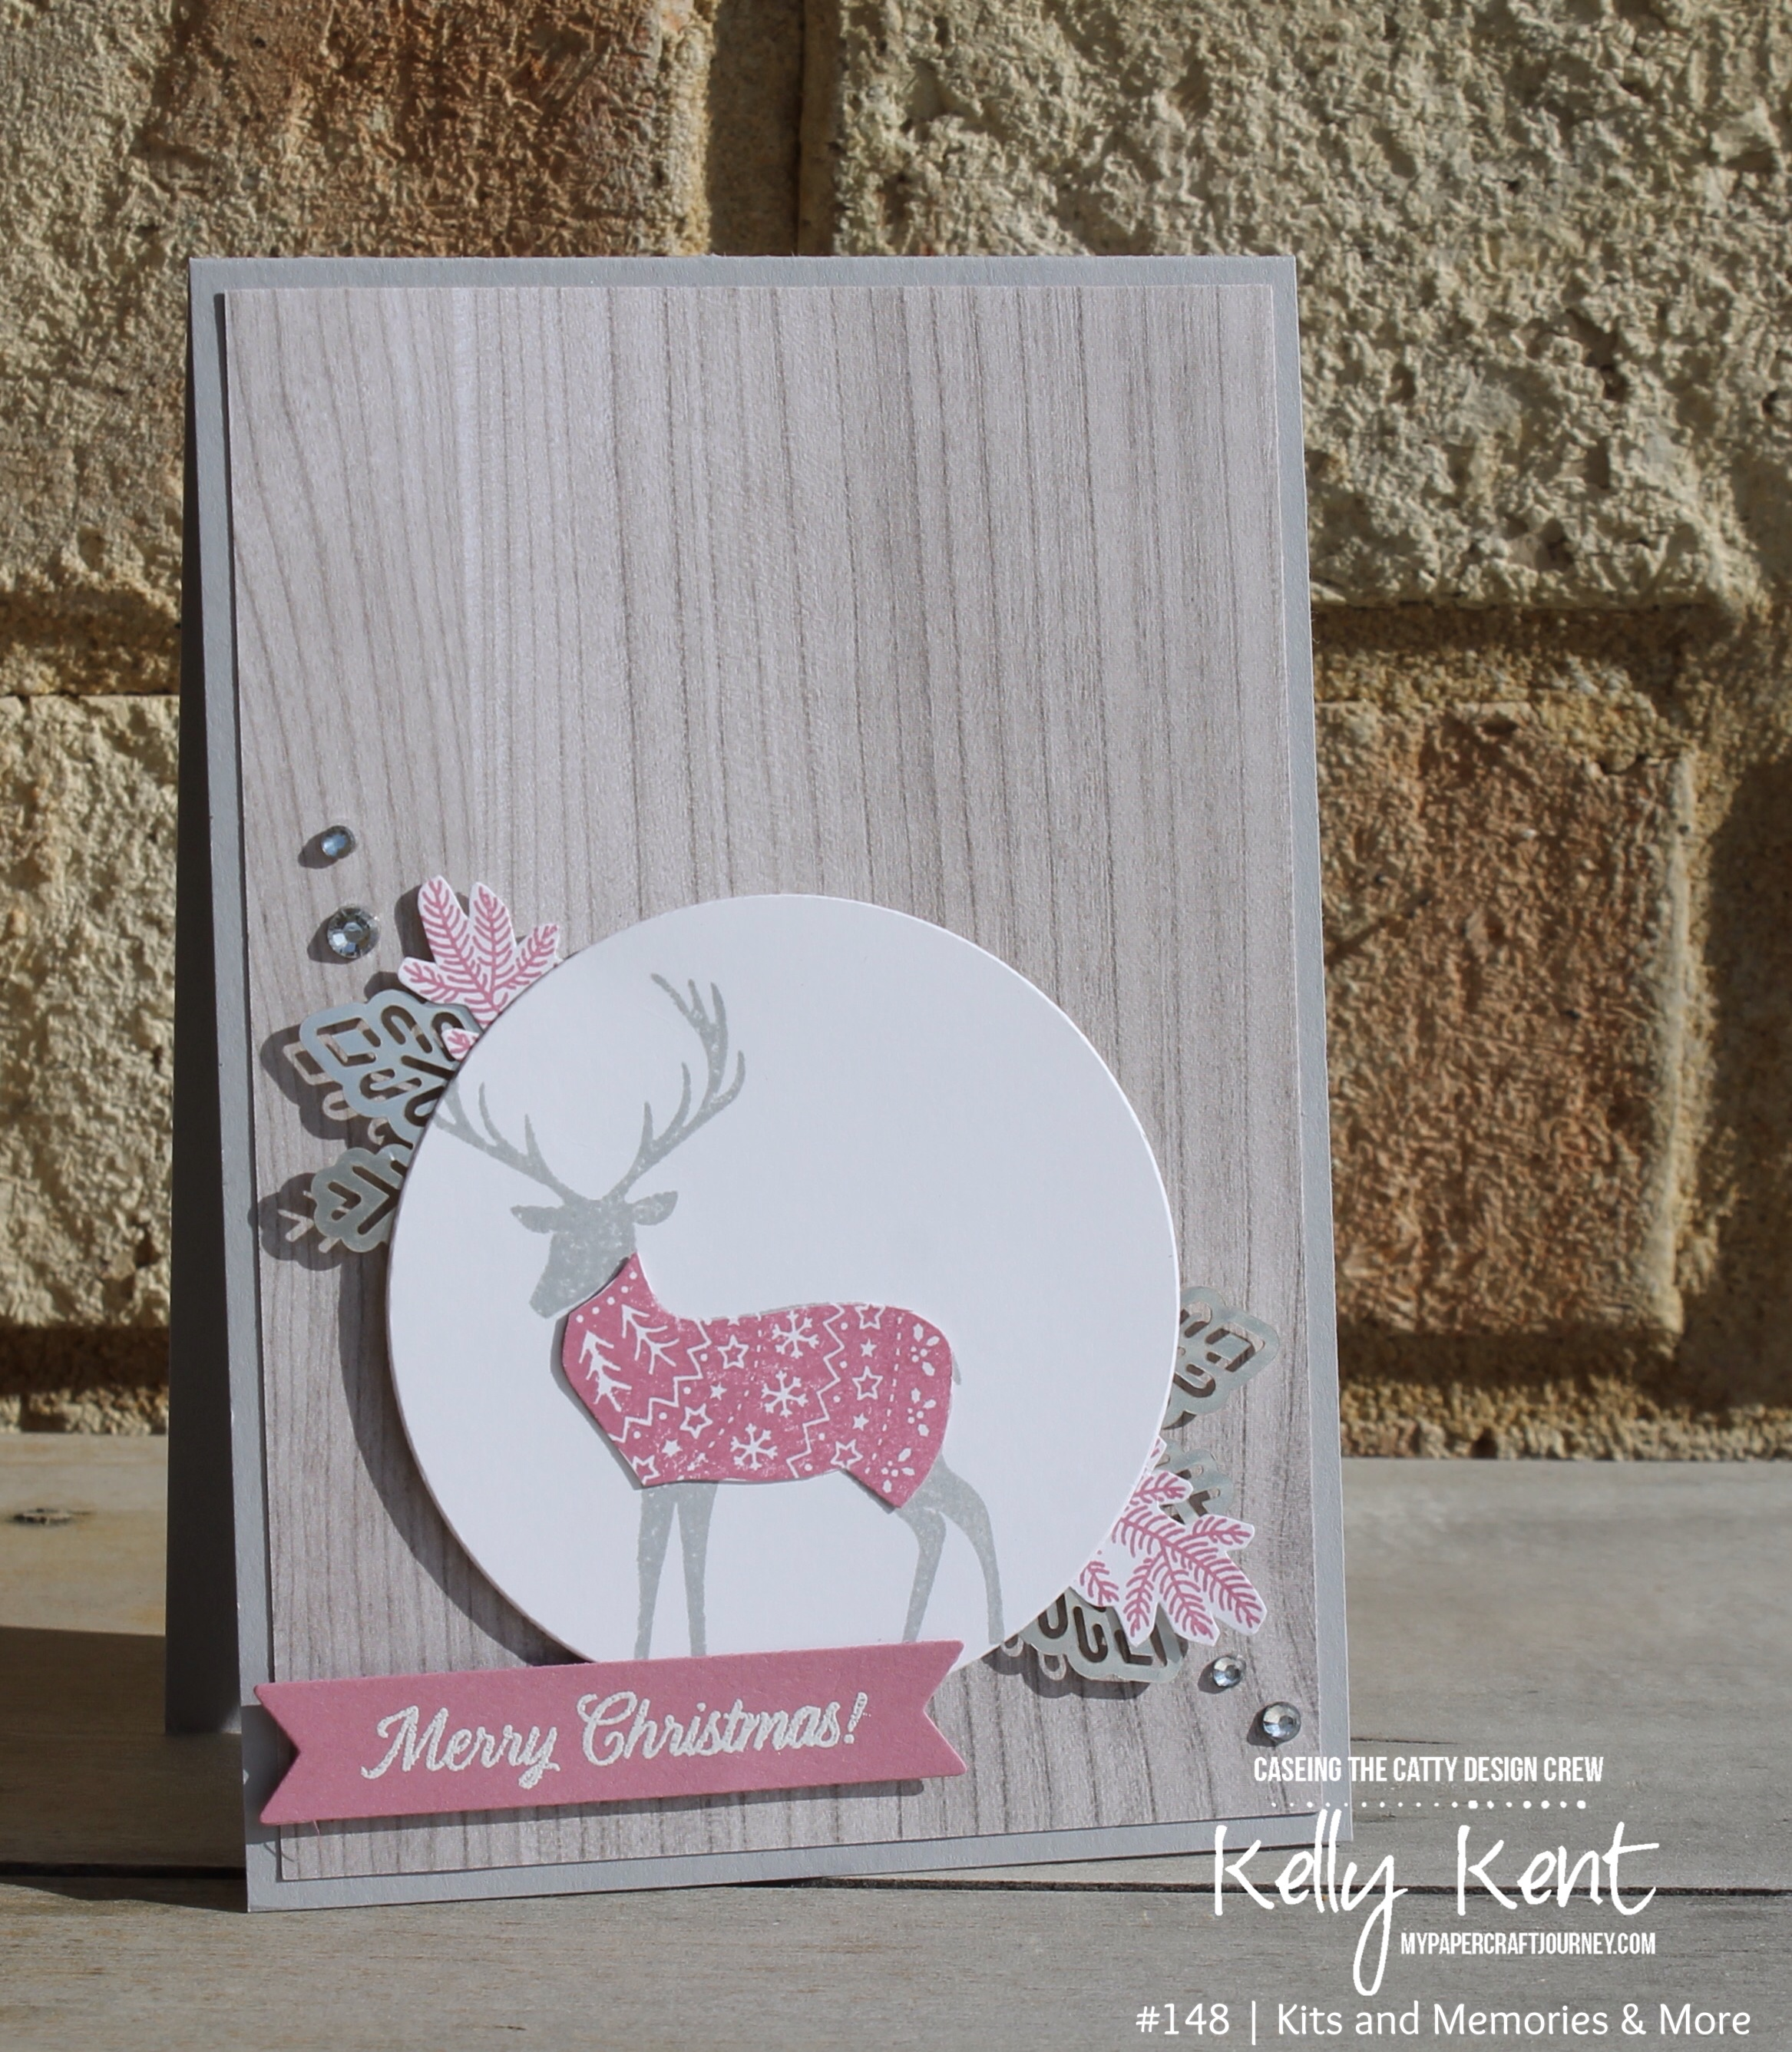 CASEing the Catty #148 Project Kit | kelly kent